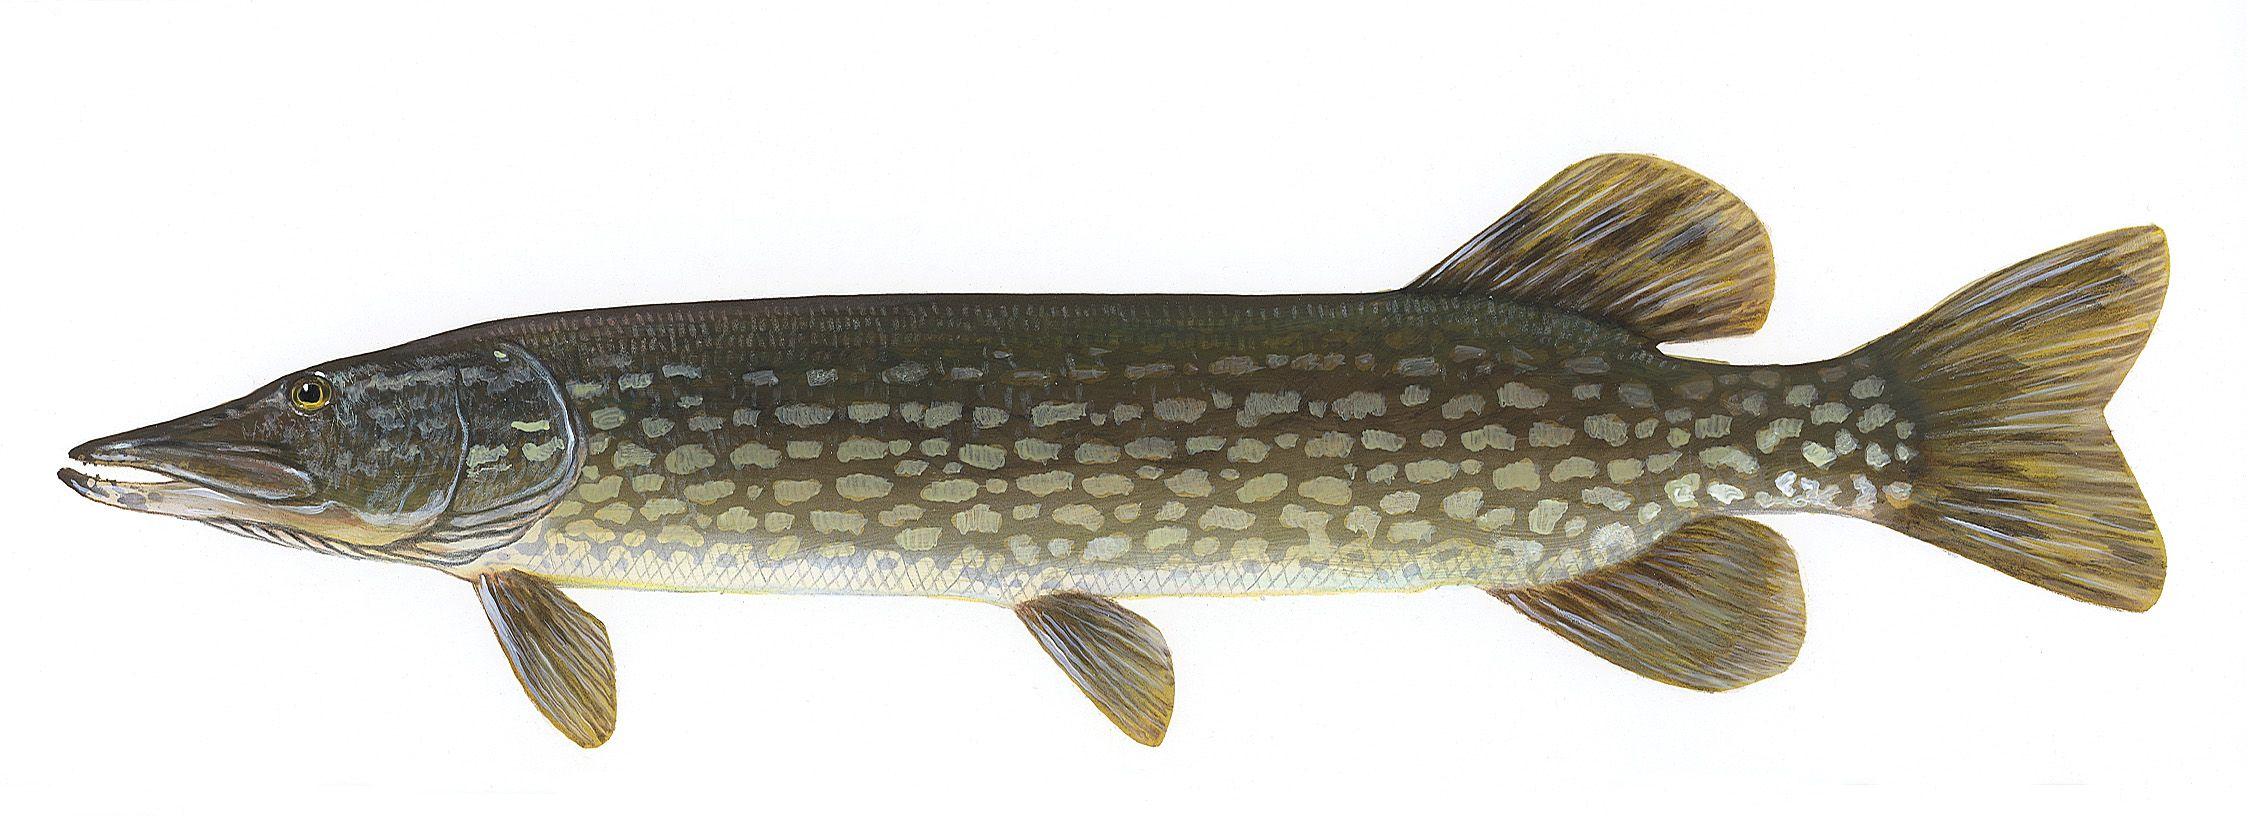 Freshwater fish online canada - Northern Pike